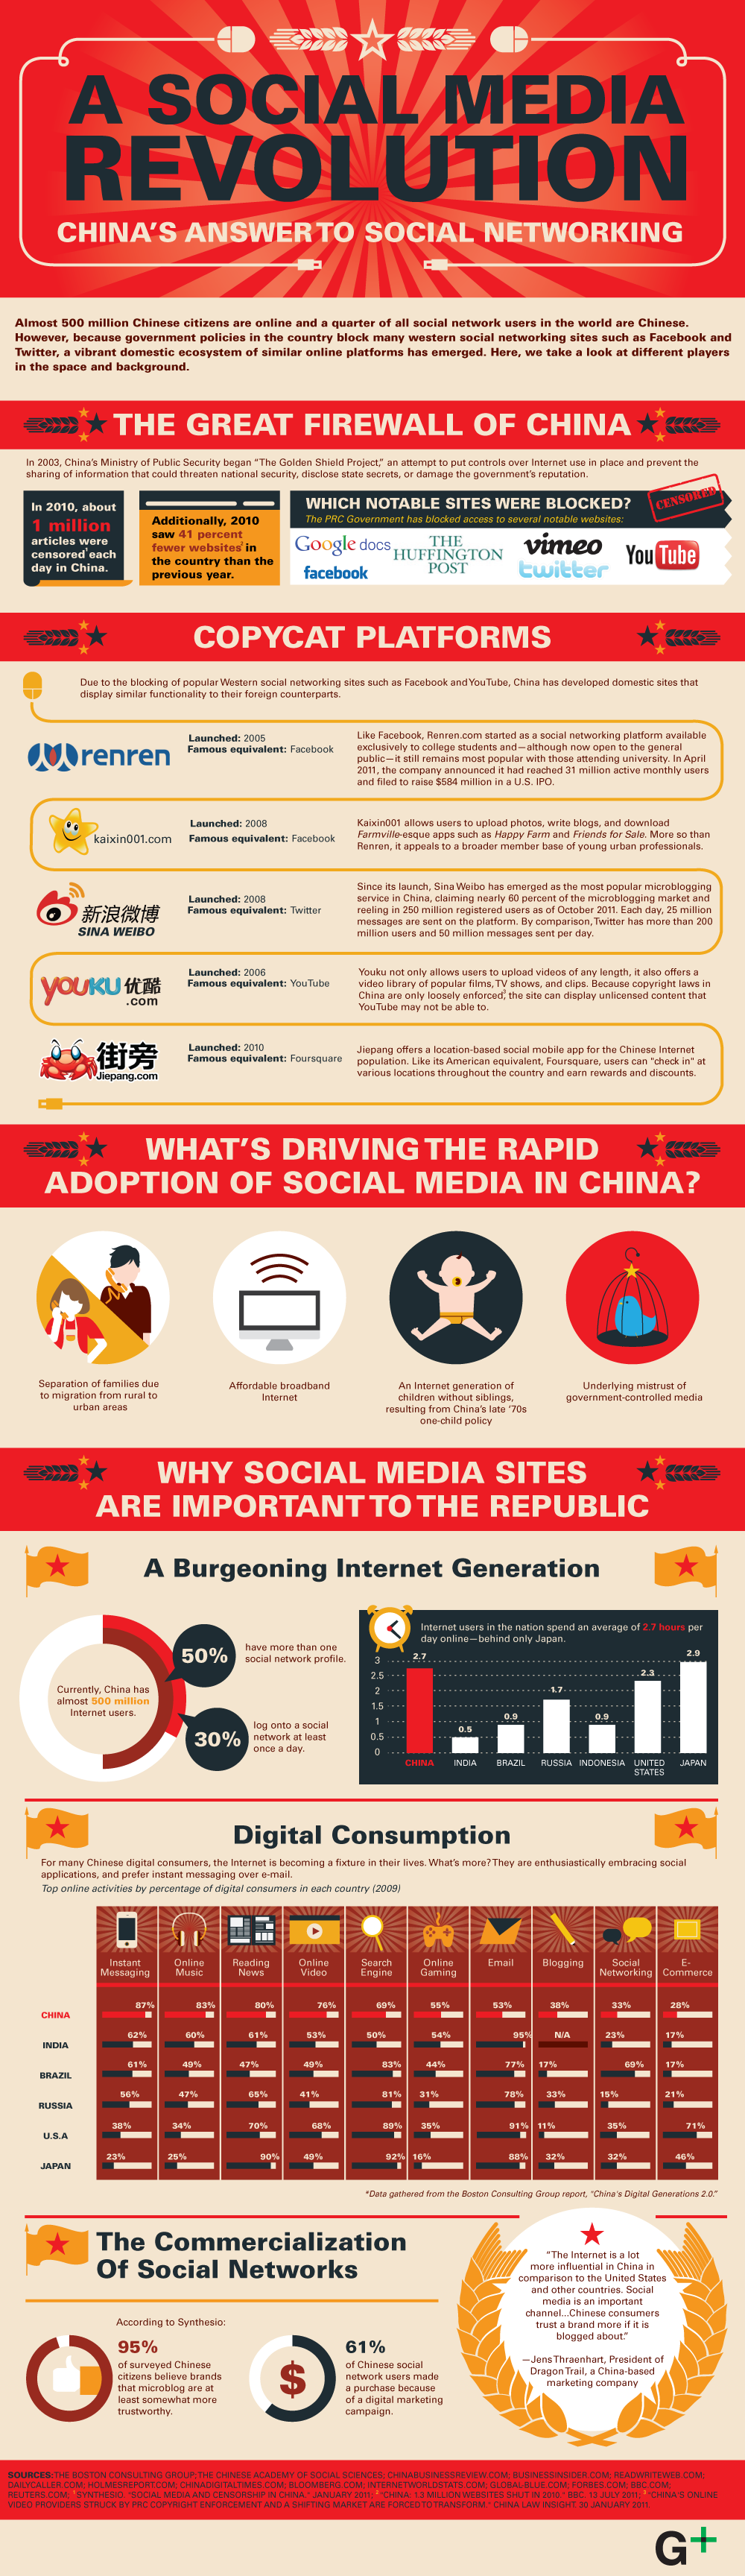 Beyond the Great Firewall: How China Does Social Networking